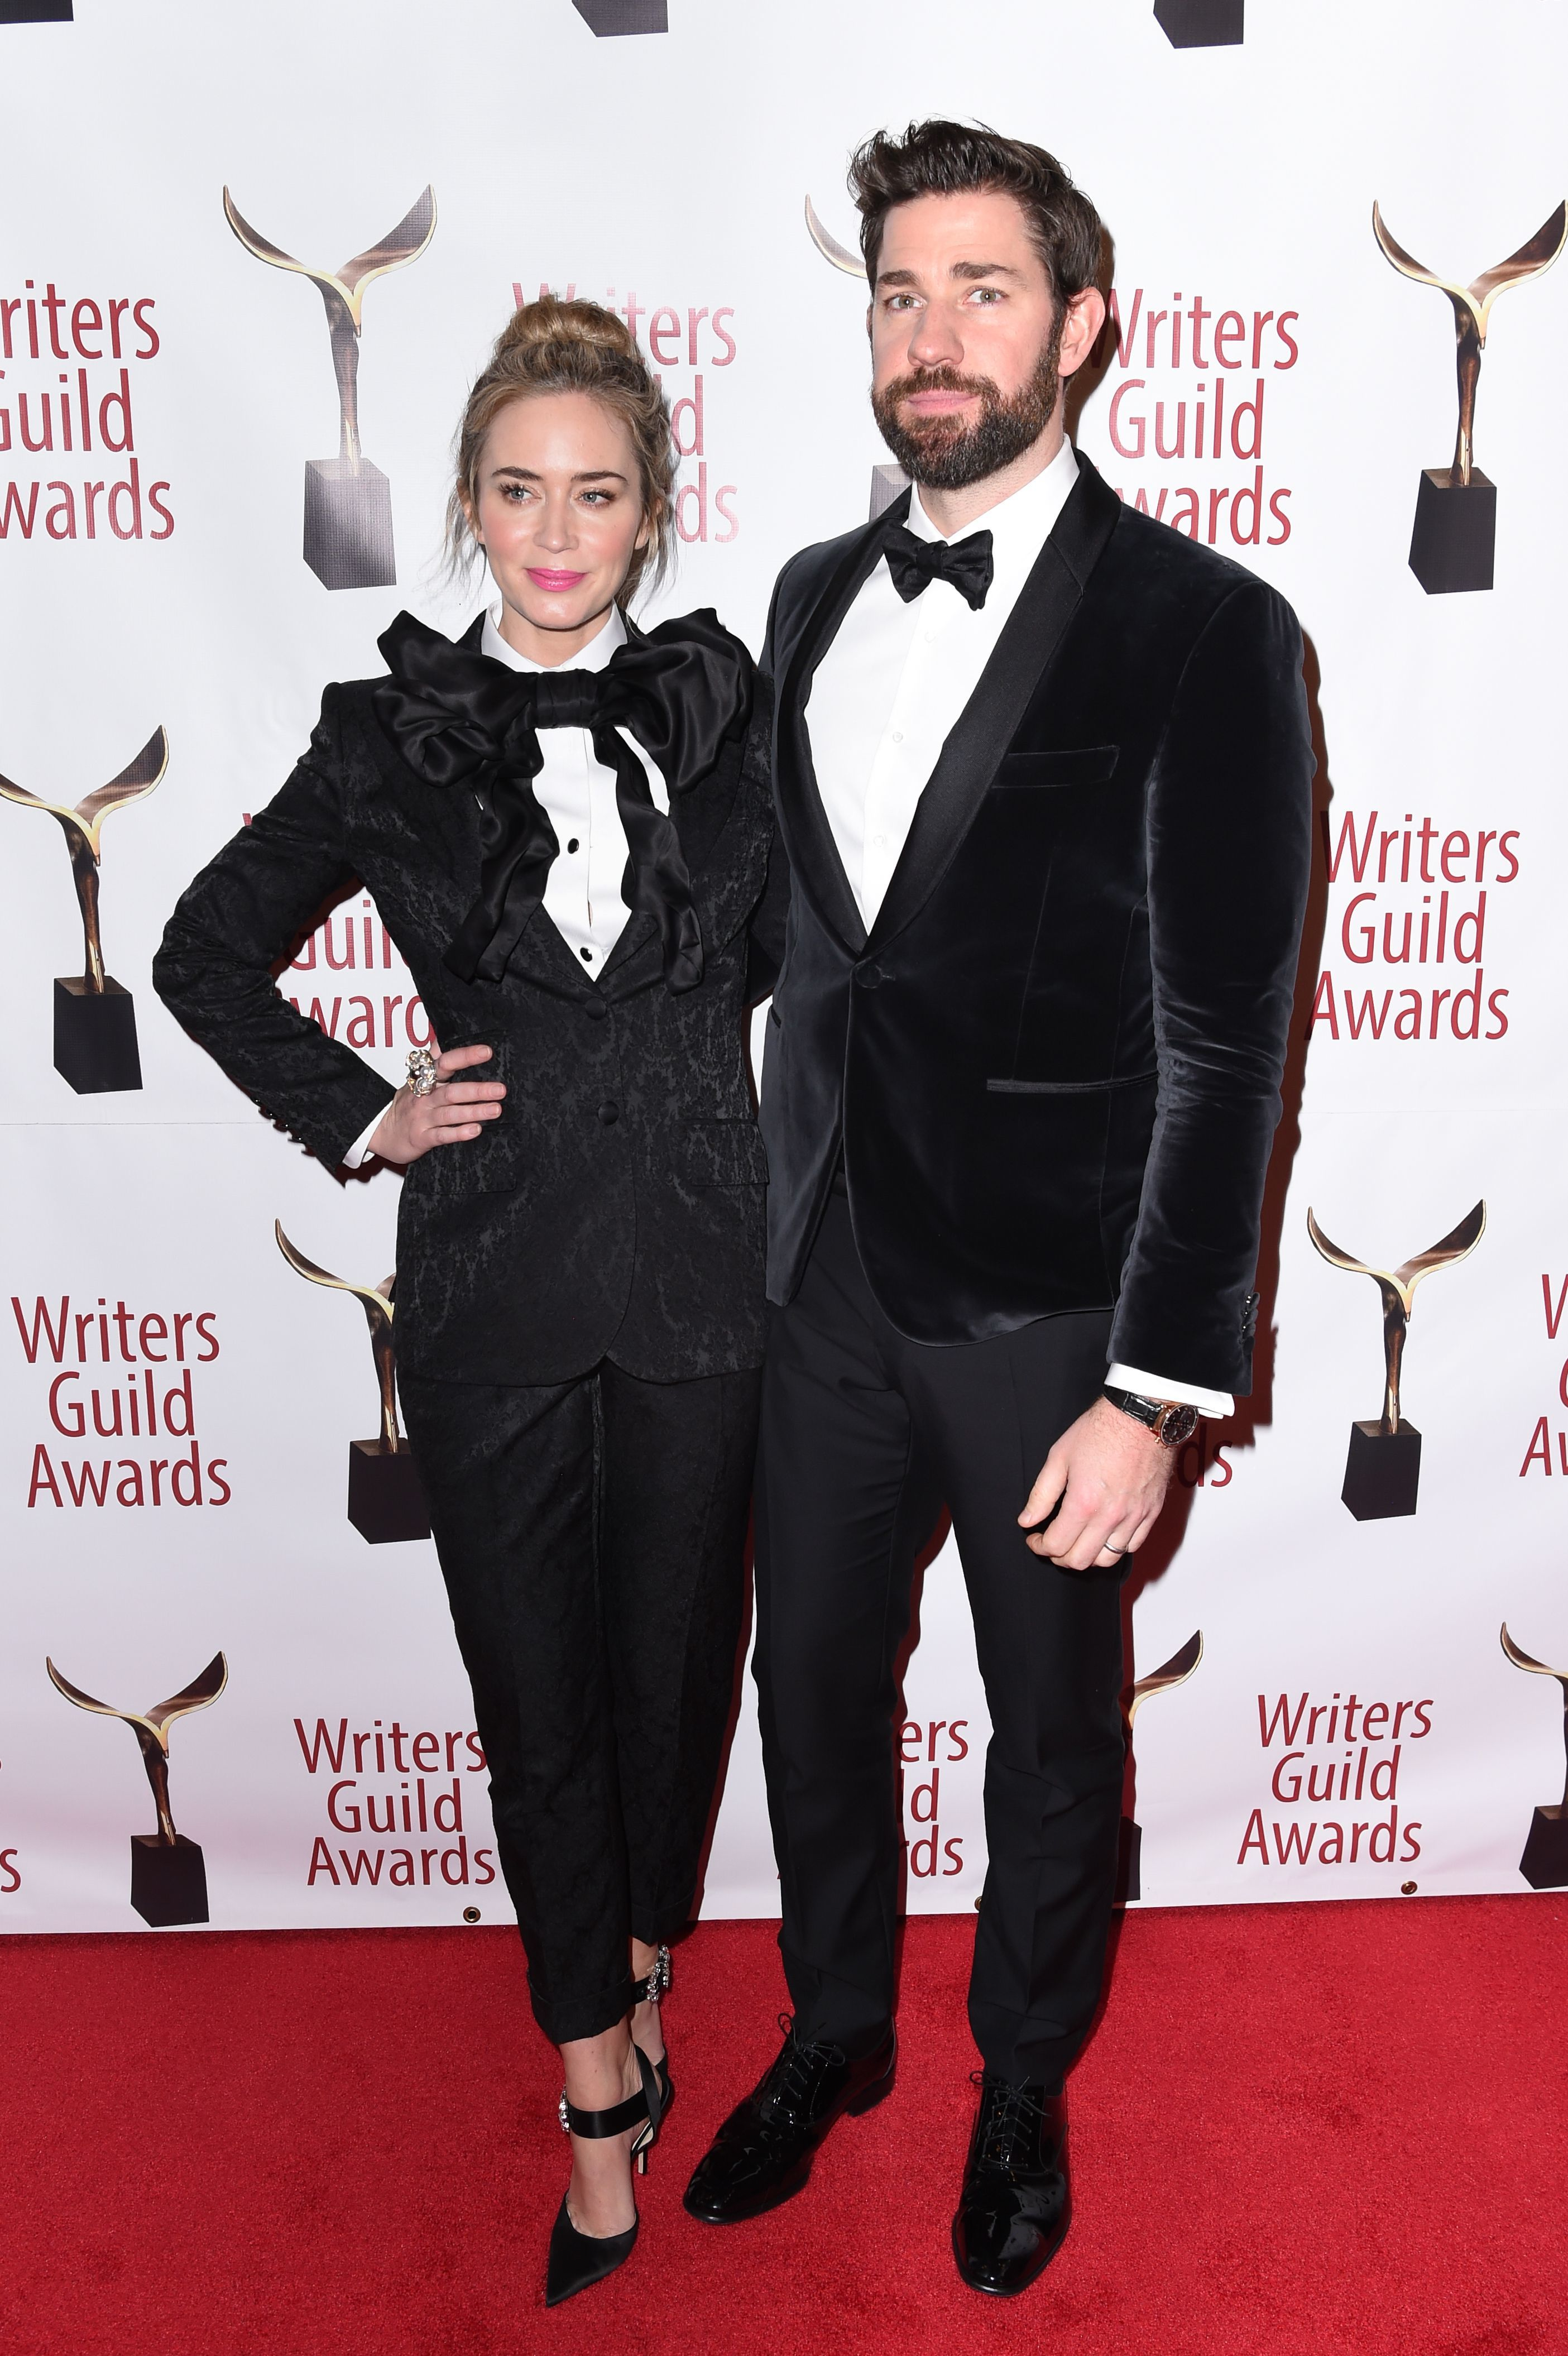 Emily Blunt and John Krasinski attend the 71st Annual Writers Guild Awards in New York City on Feb. 17, 2019.